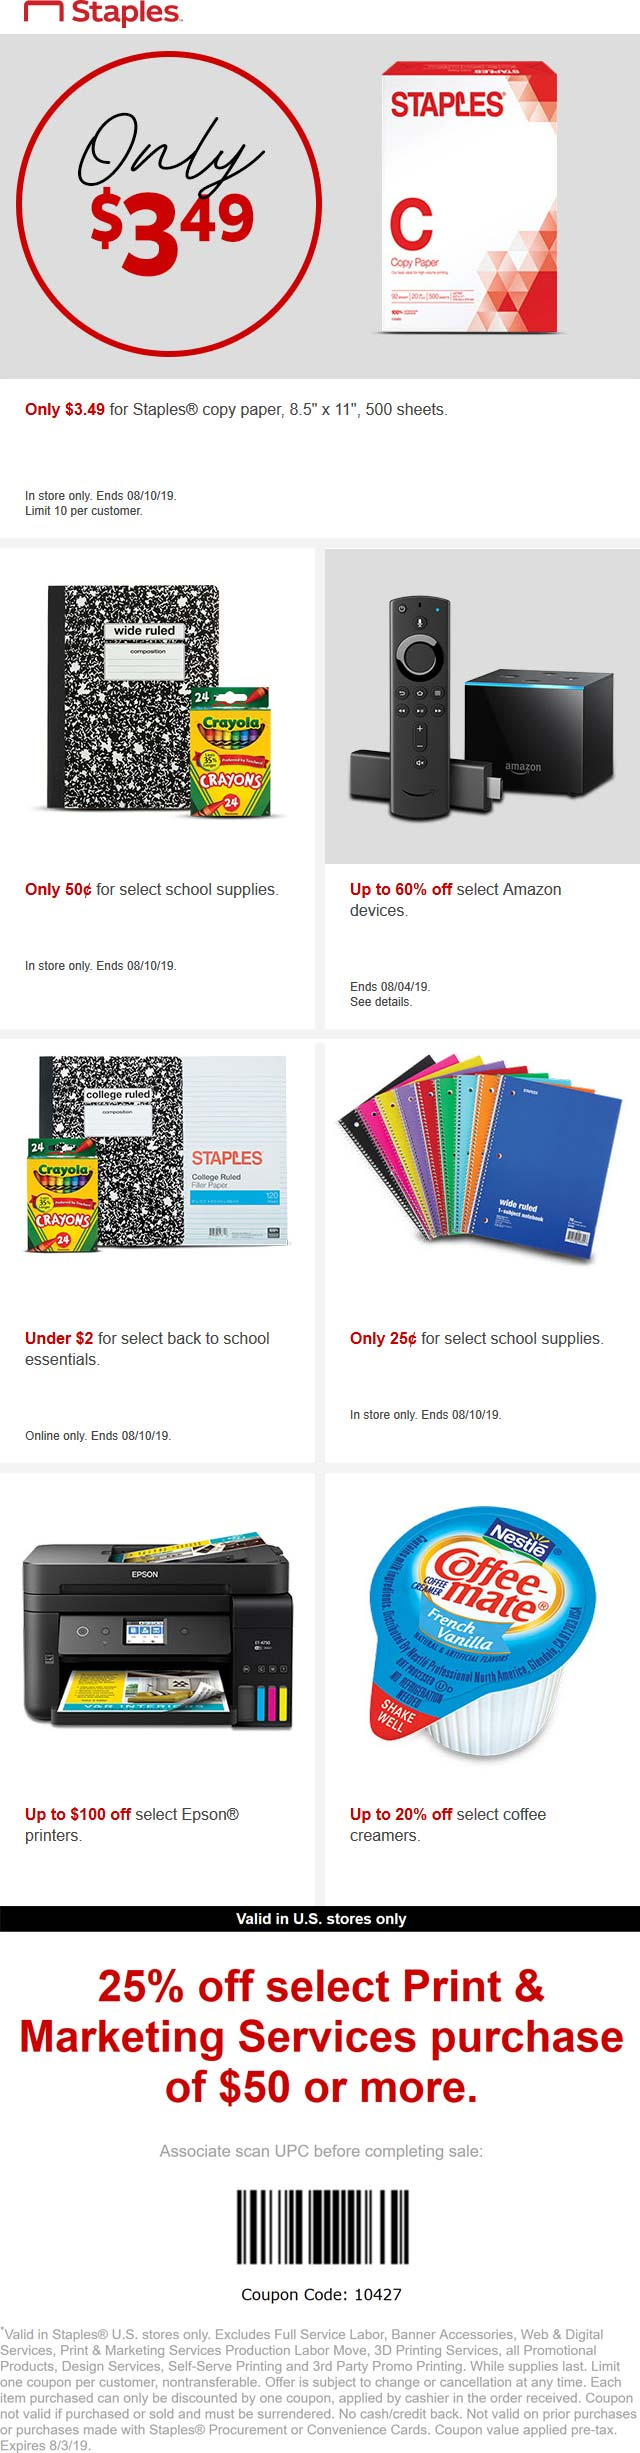 Staples.com Promo Coupon Various .50 cent school supplies going on at Staples